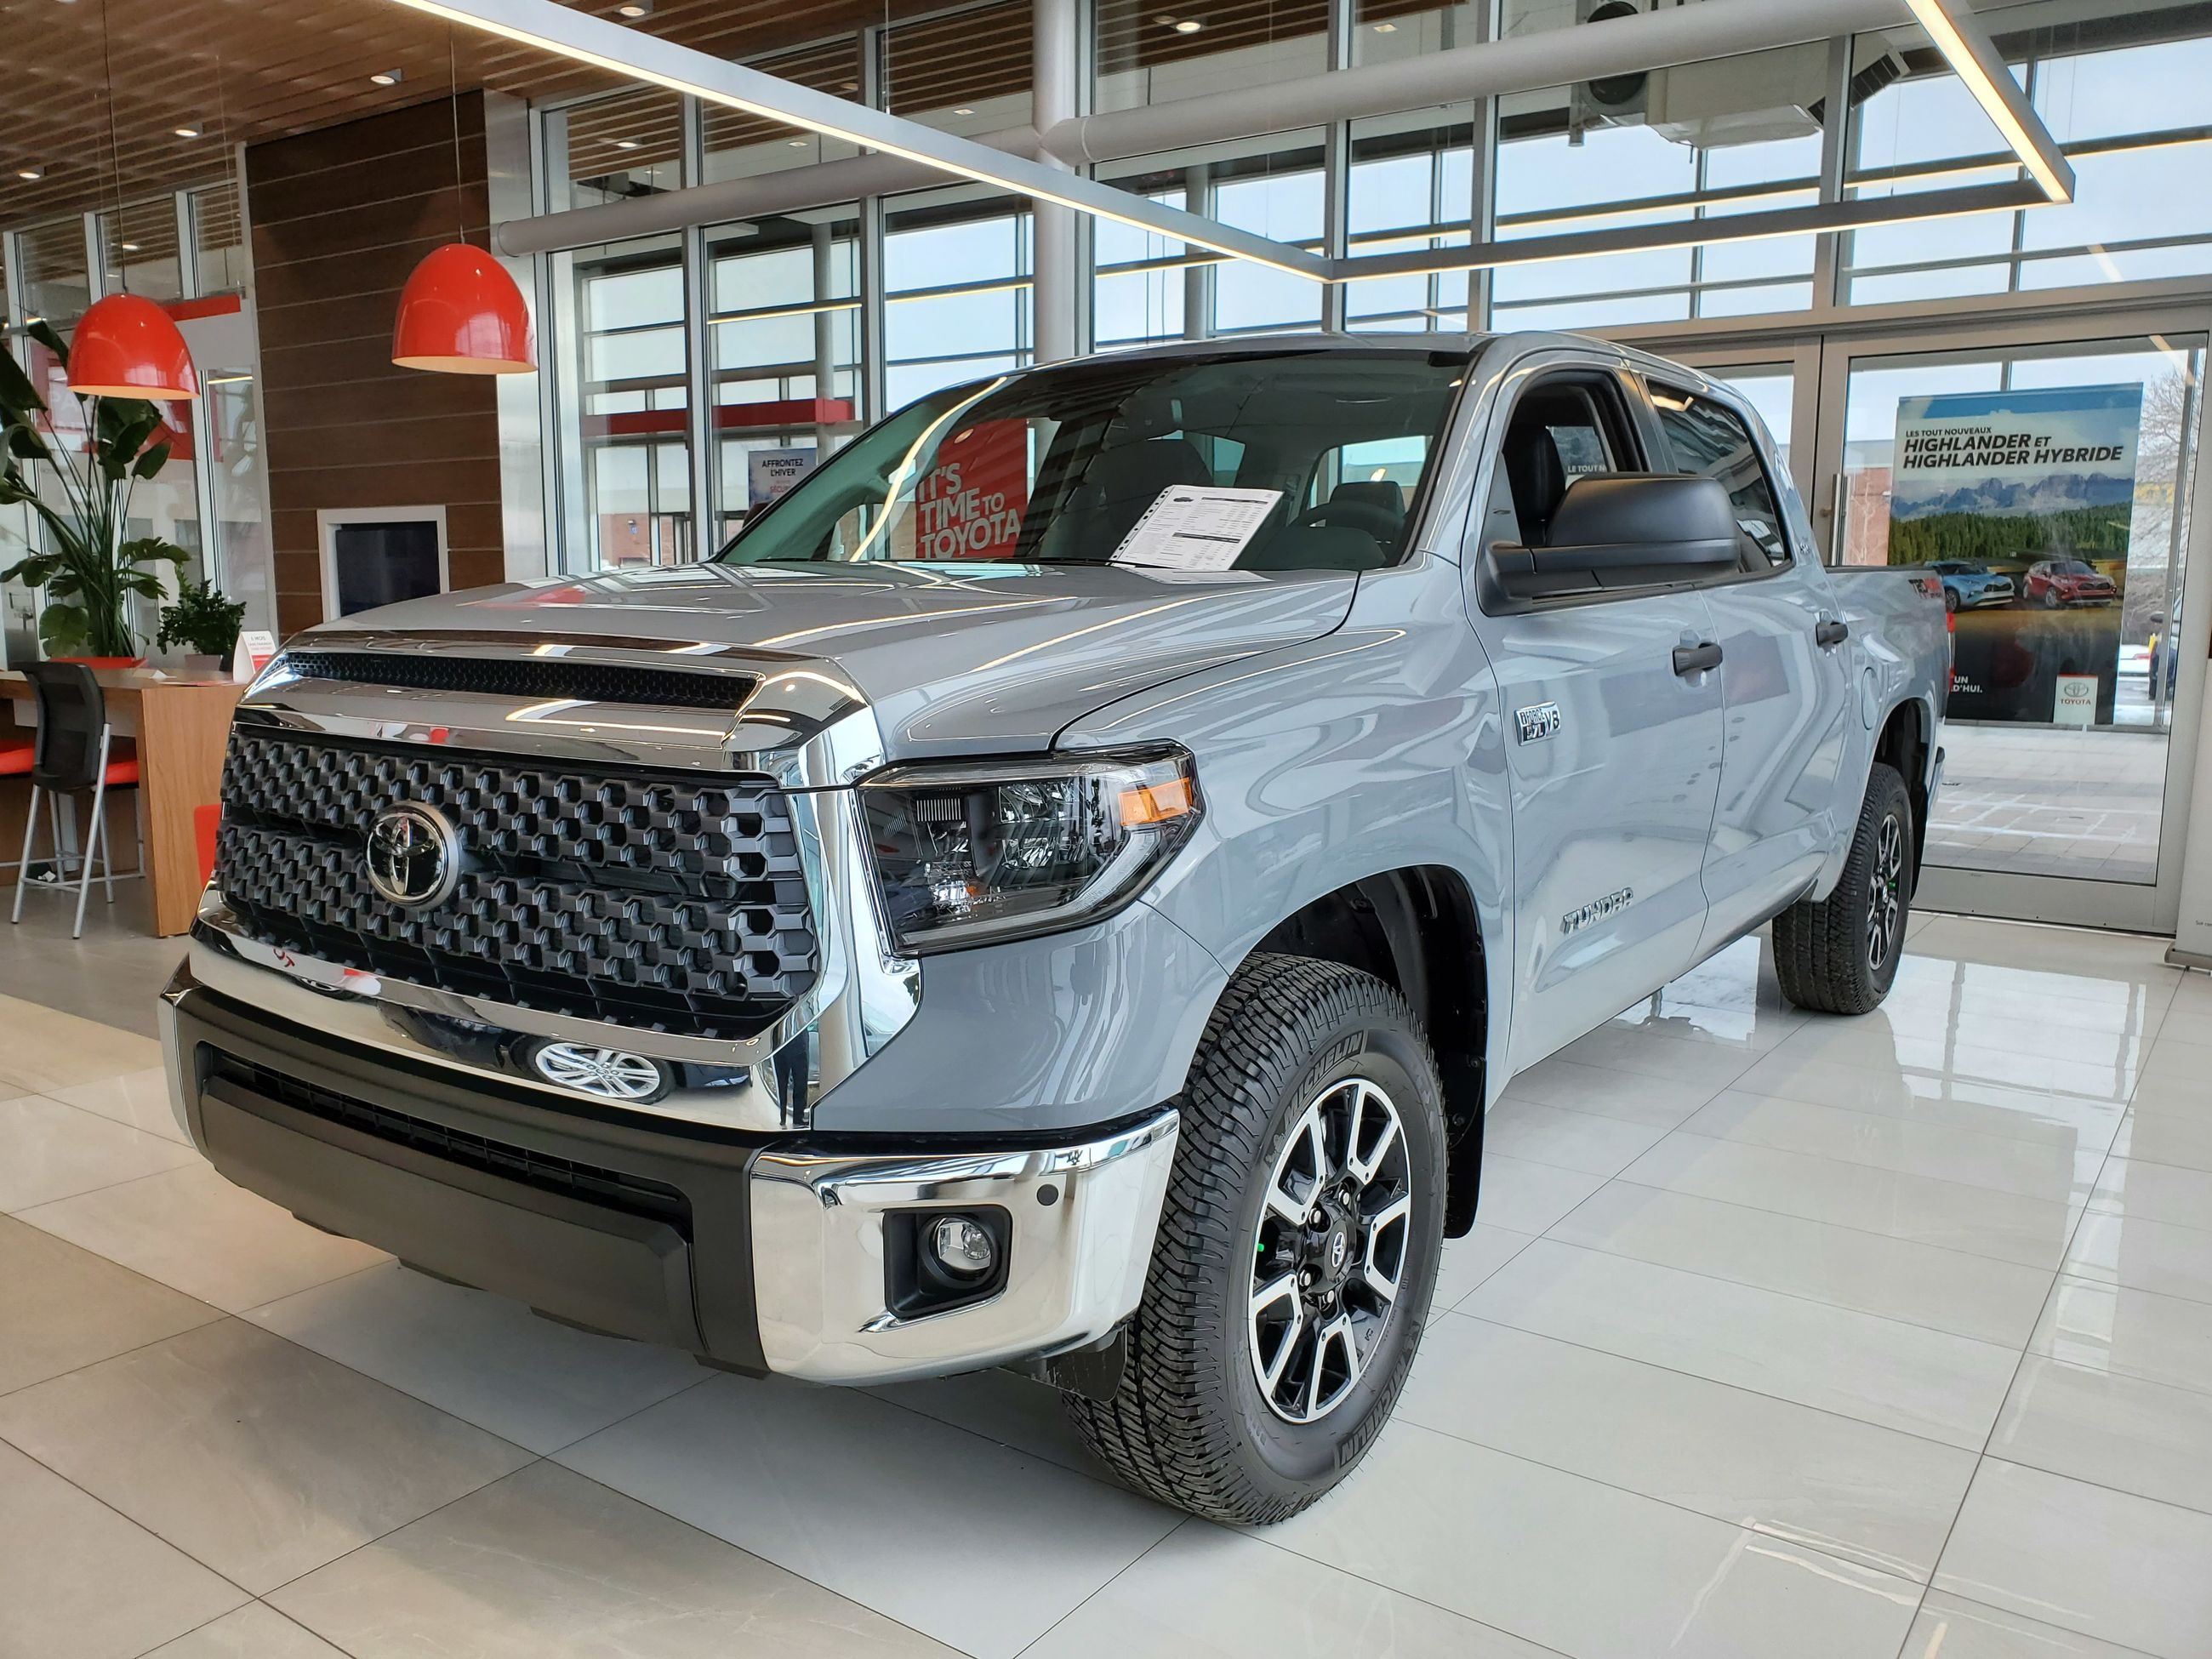 New 2020 Toyota Tundra Trd Off Road Premium Crewmax Sb For Sale In Lachine Spinelli Toyota Lachine In Lachine Quebec